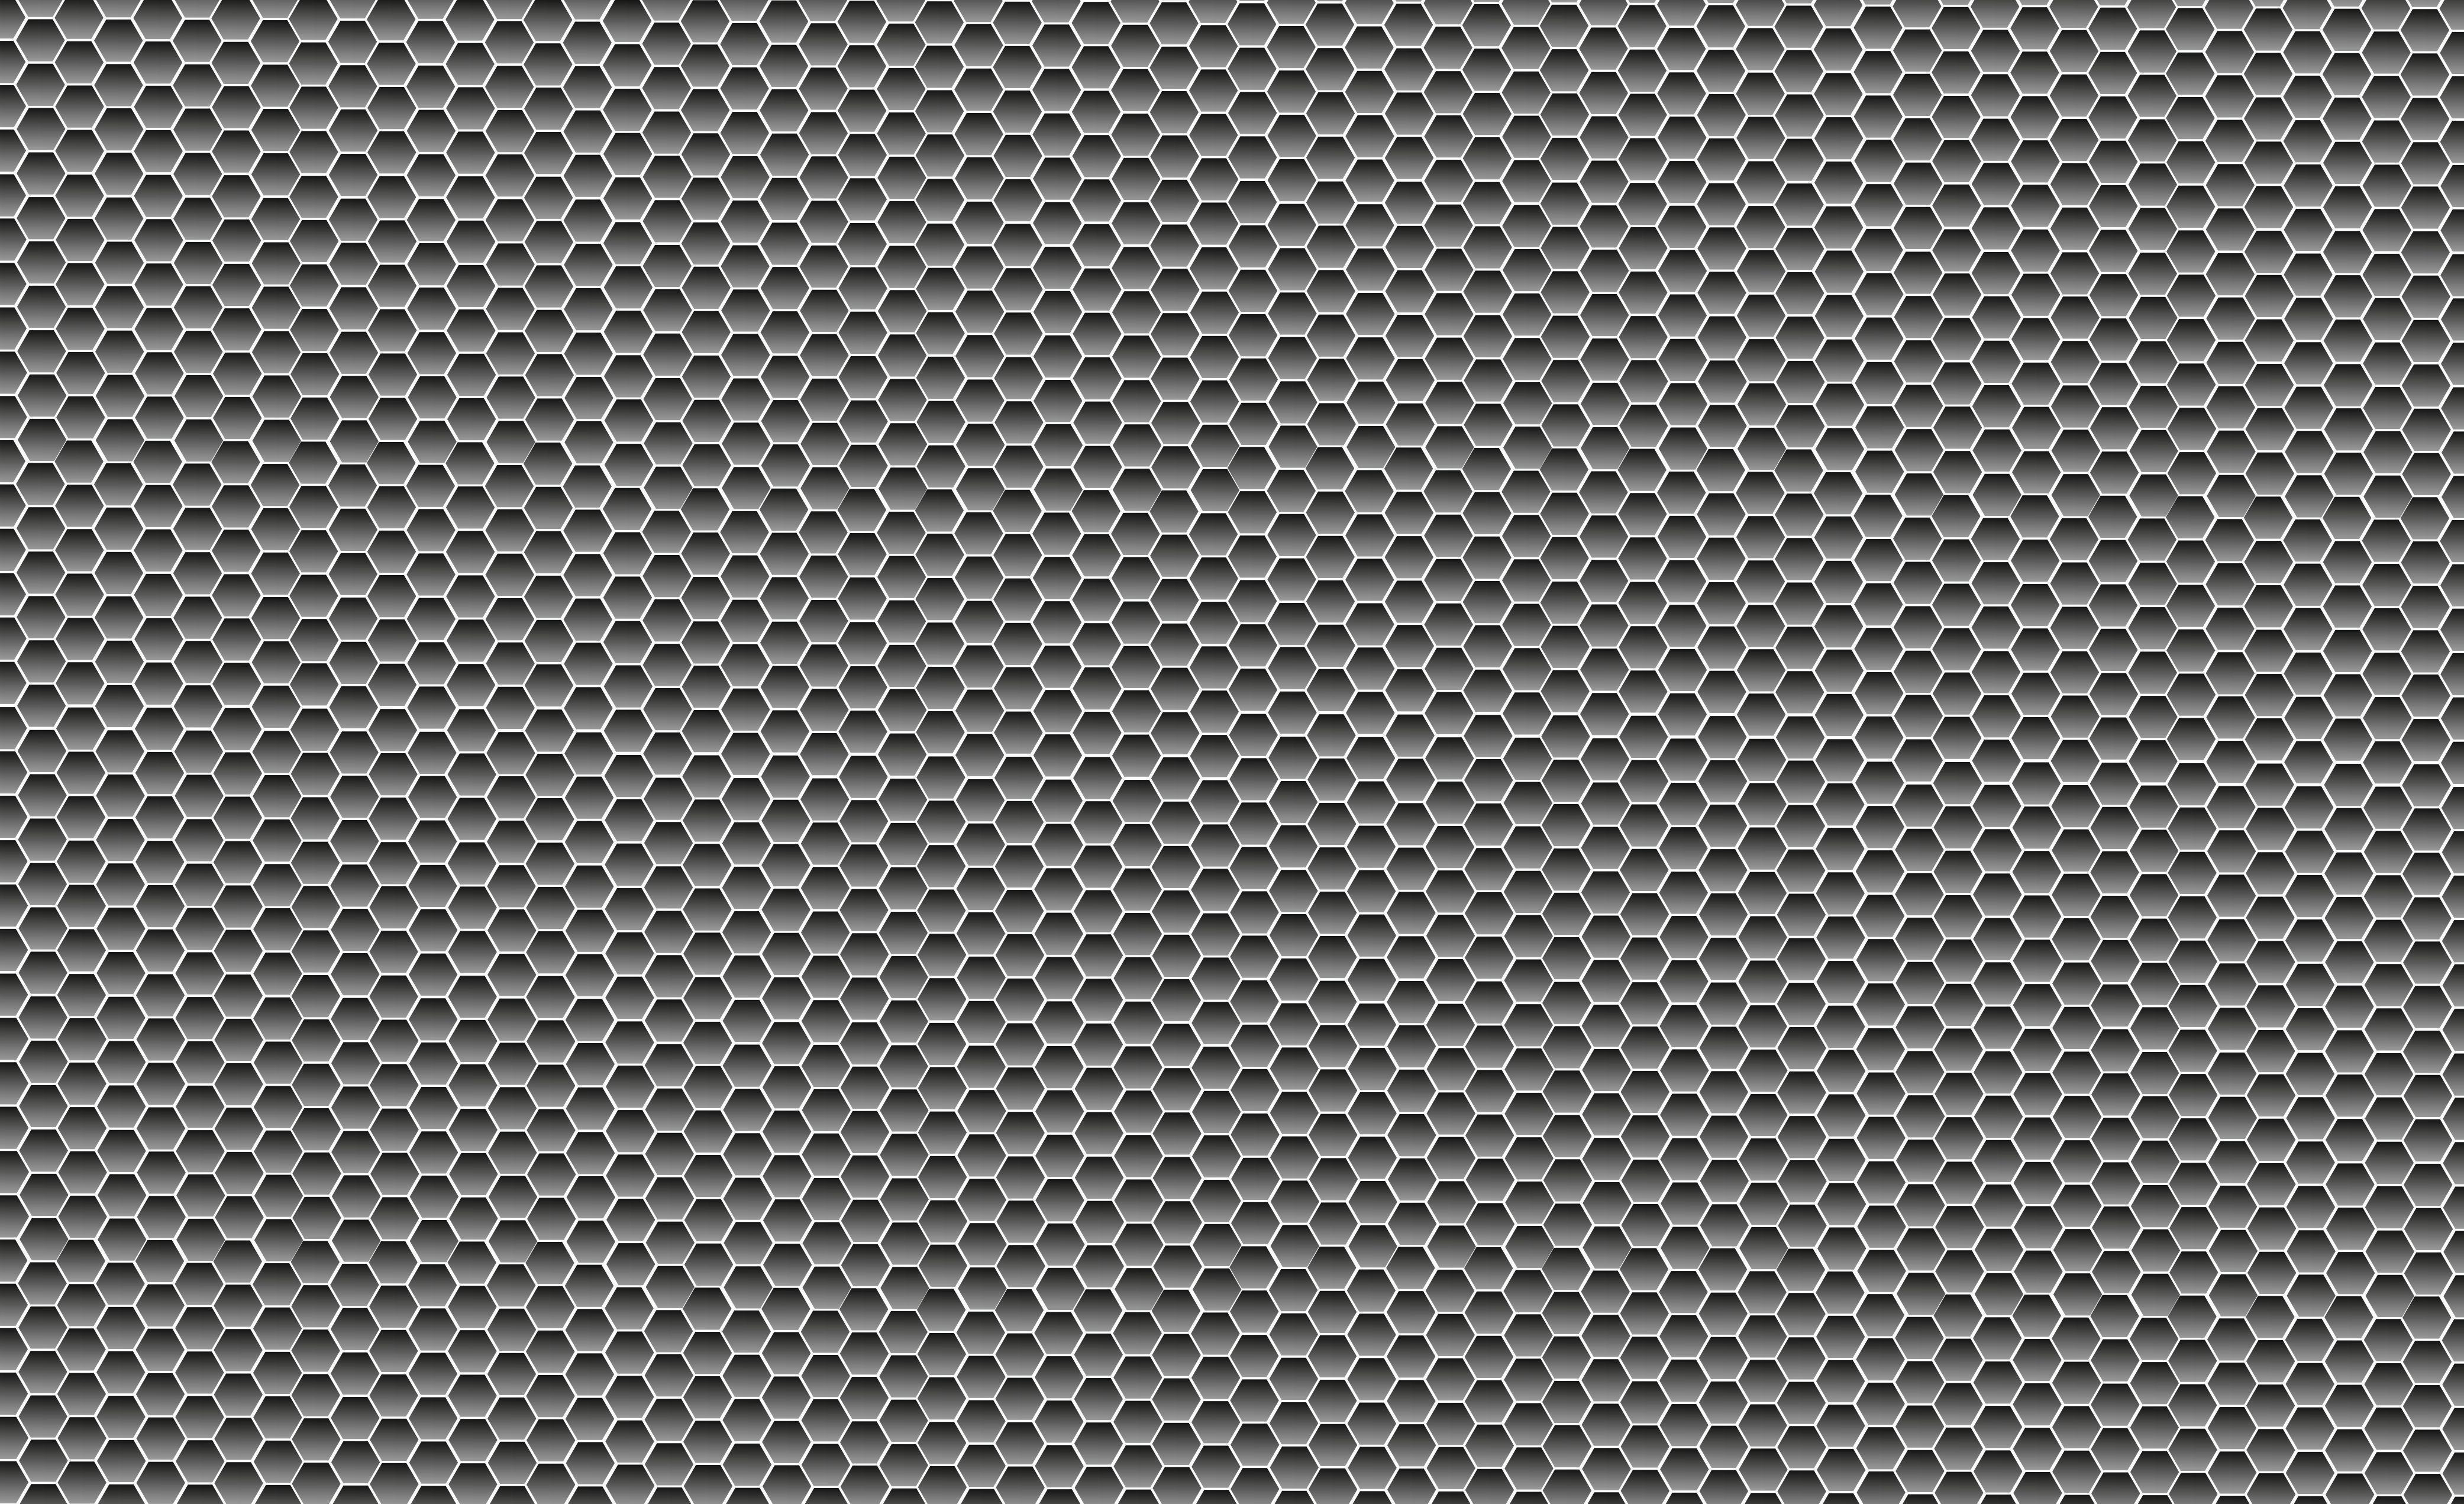 7 Hexagon HD Wallpapers | Backgrounds - Wallpaper Abyss